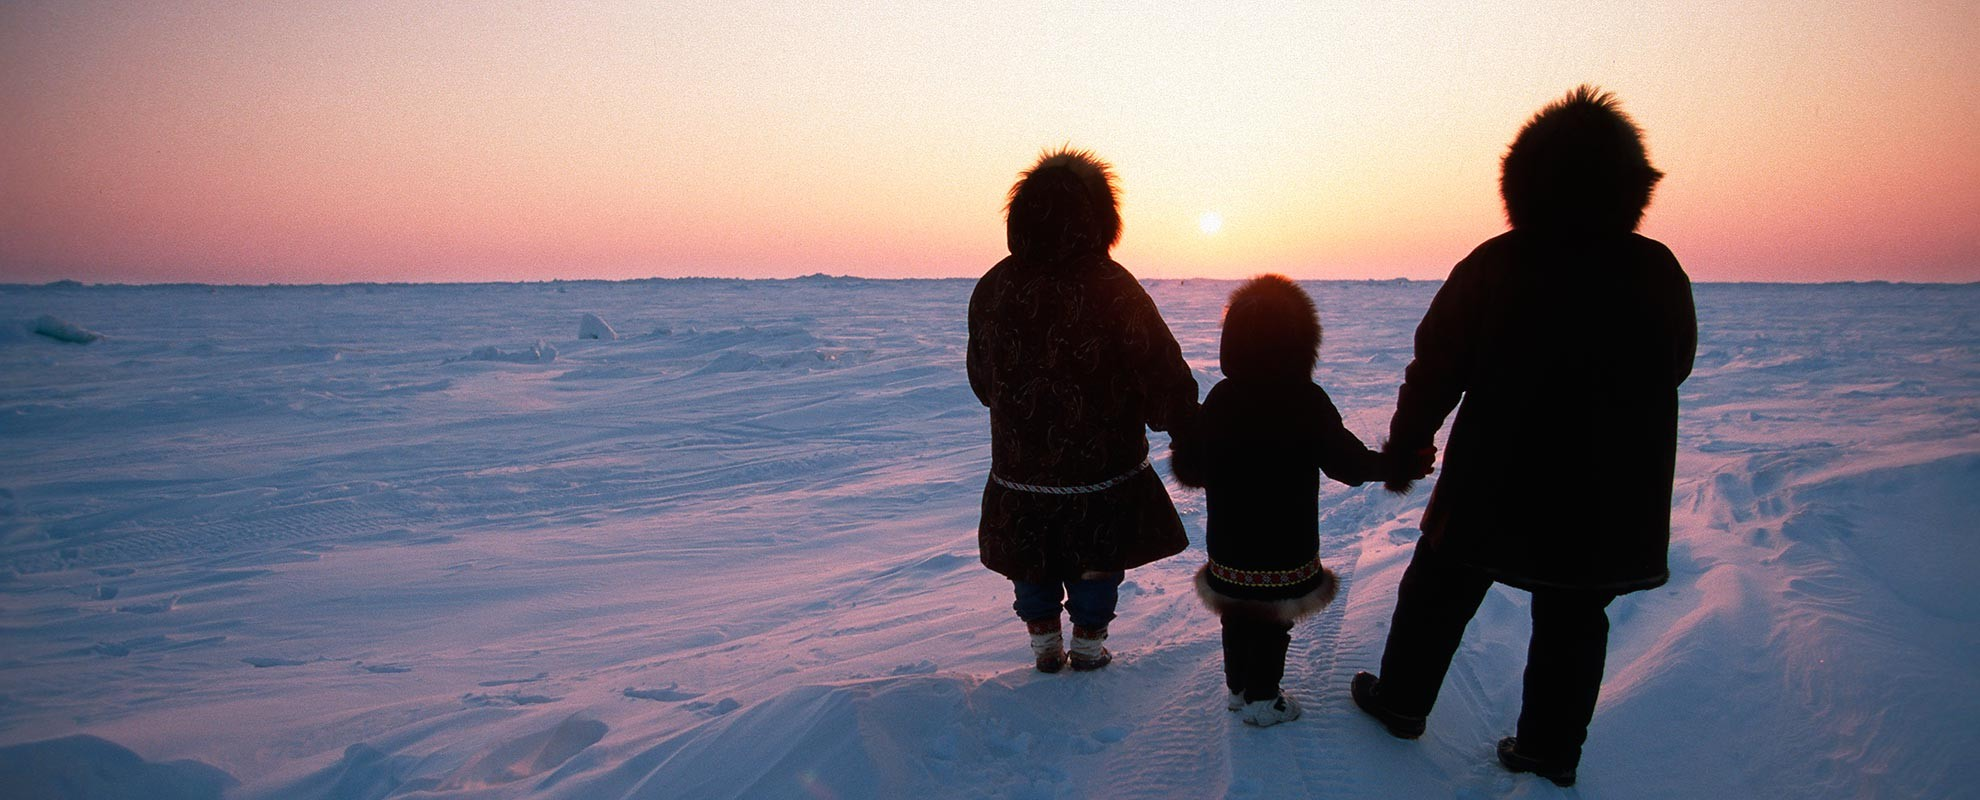 Family framed against the sunset, in the Arctic.